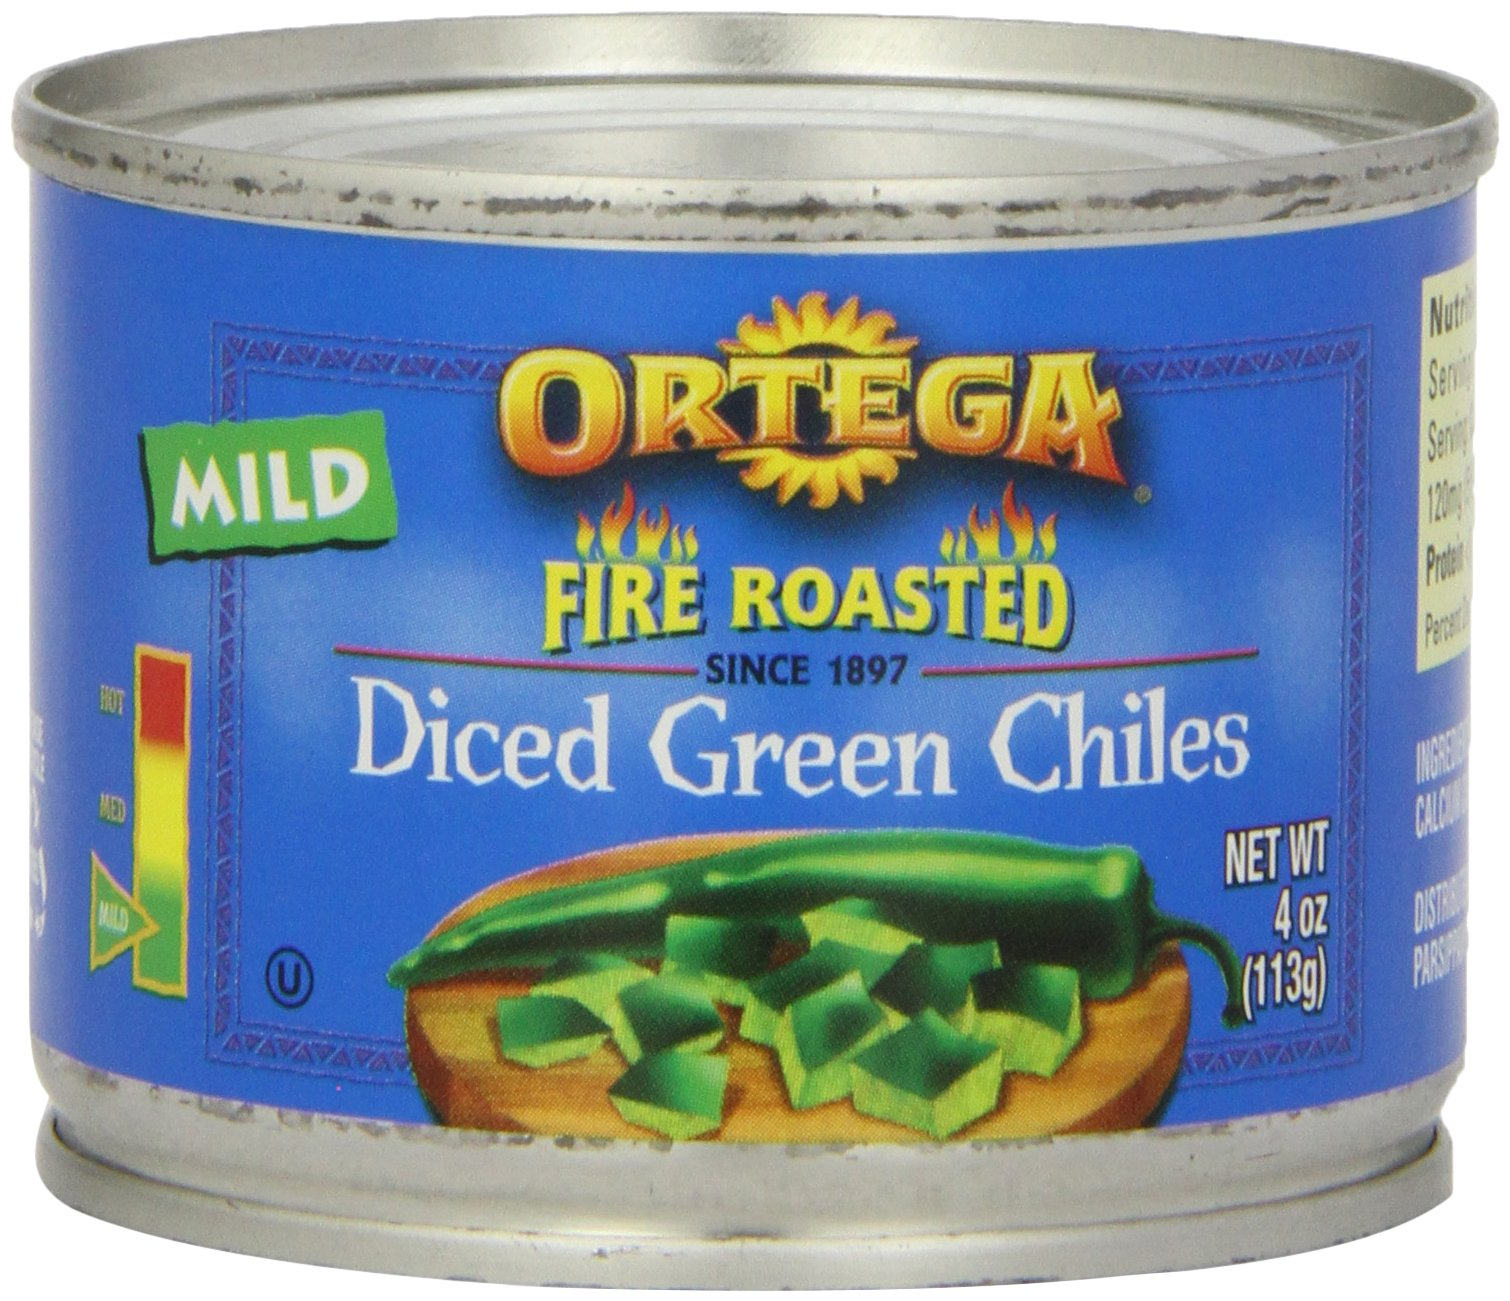 Ortega Fire Roasted Mild Diced Green Chiles 113gm (4oz)